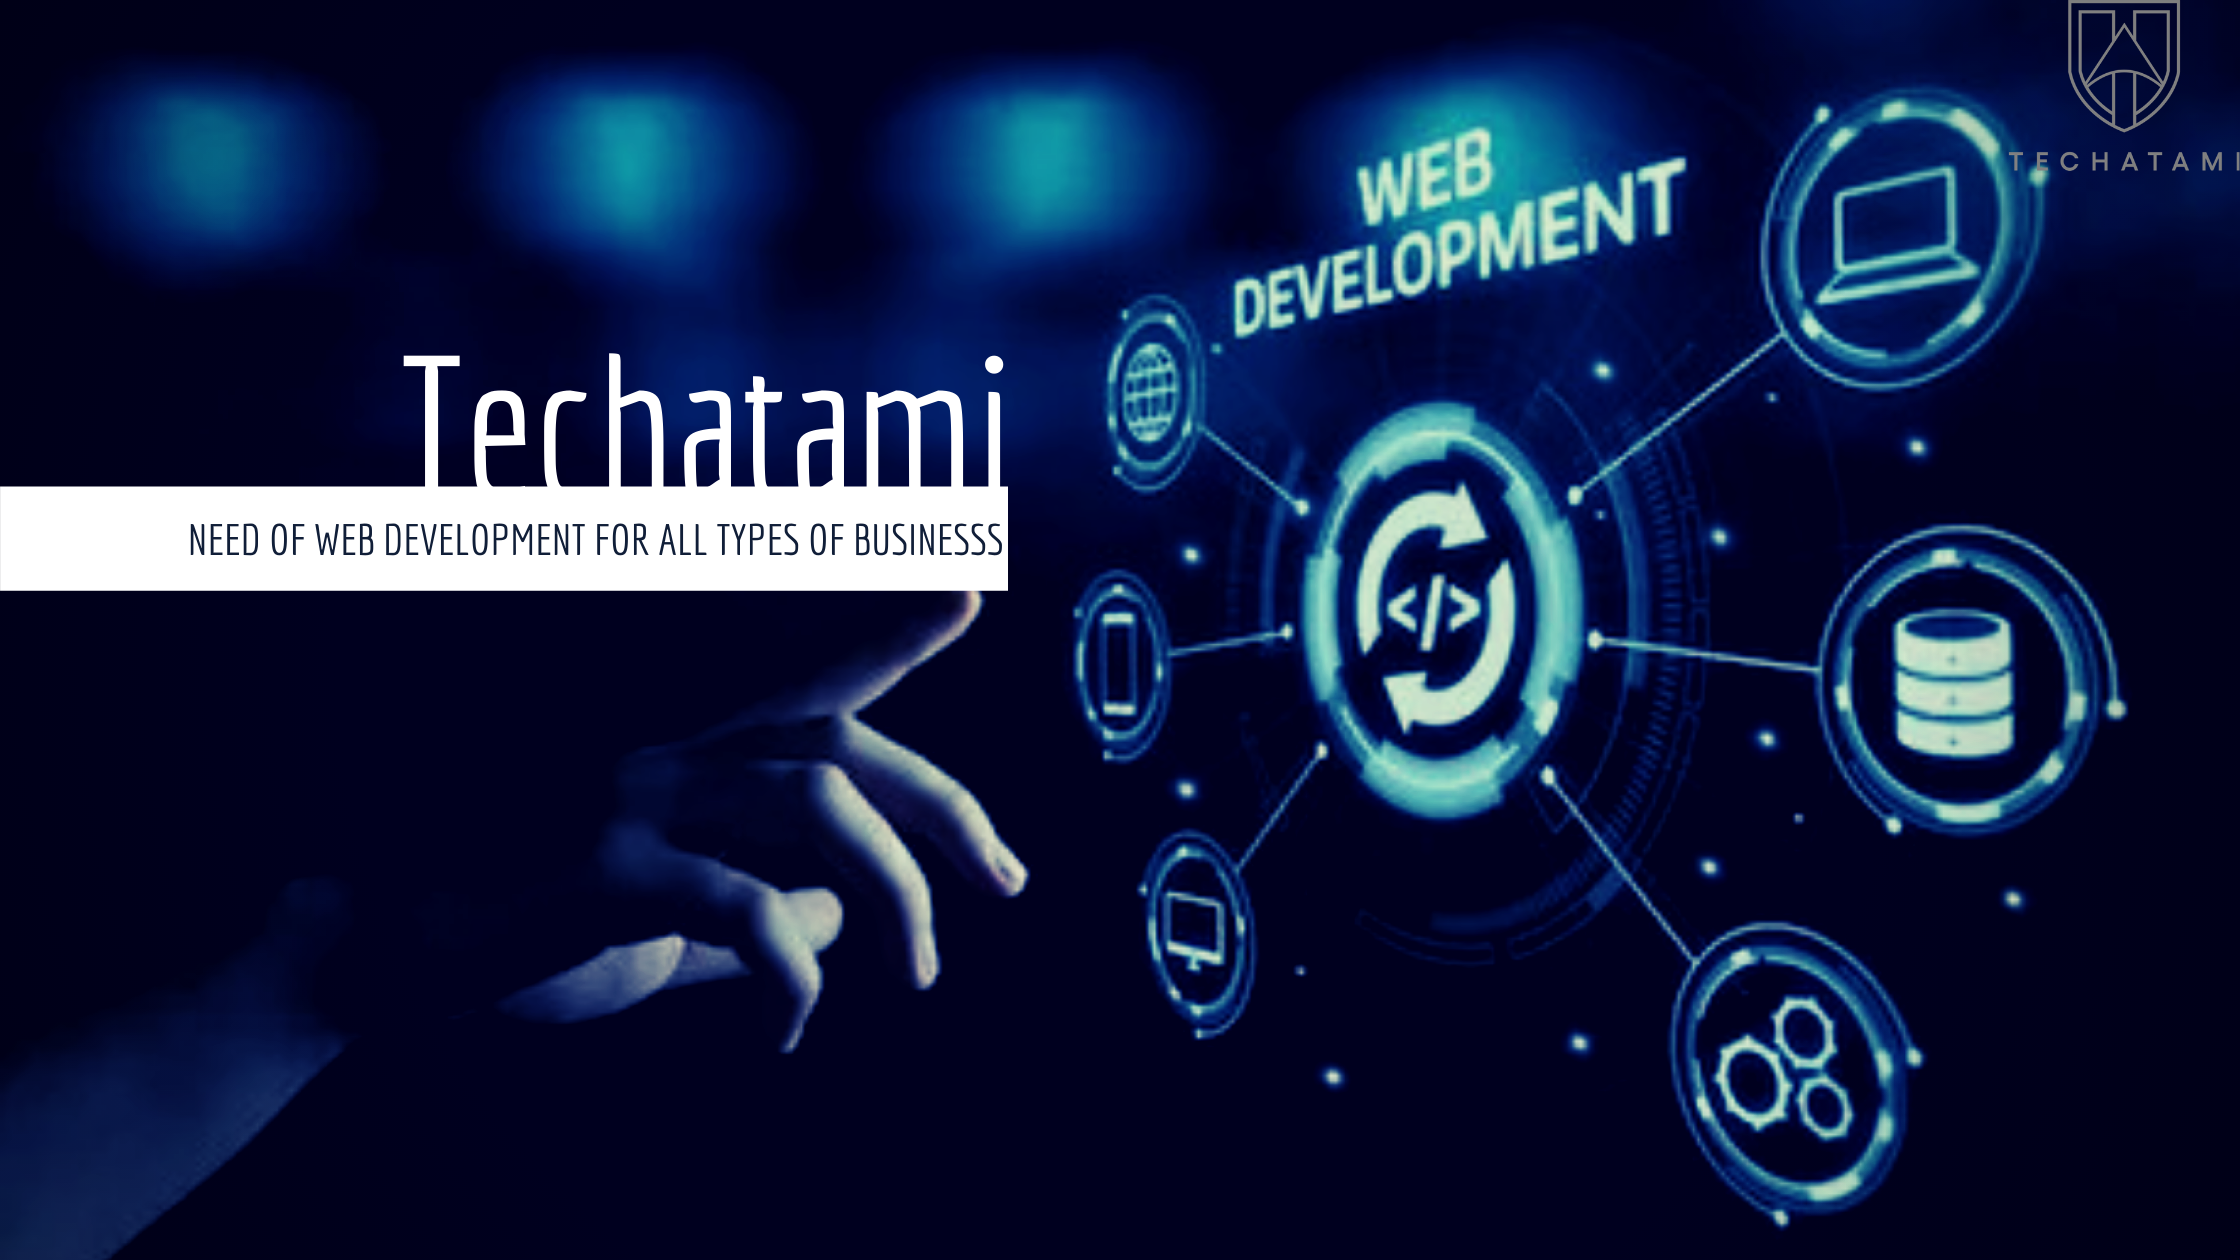 Why web development is needed for types of businesses?